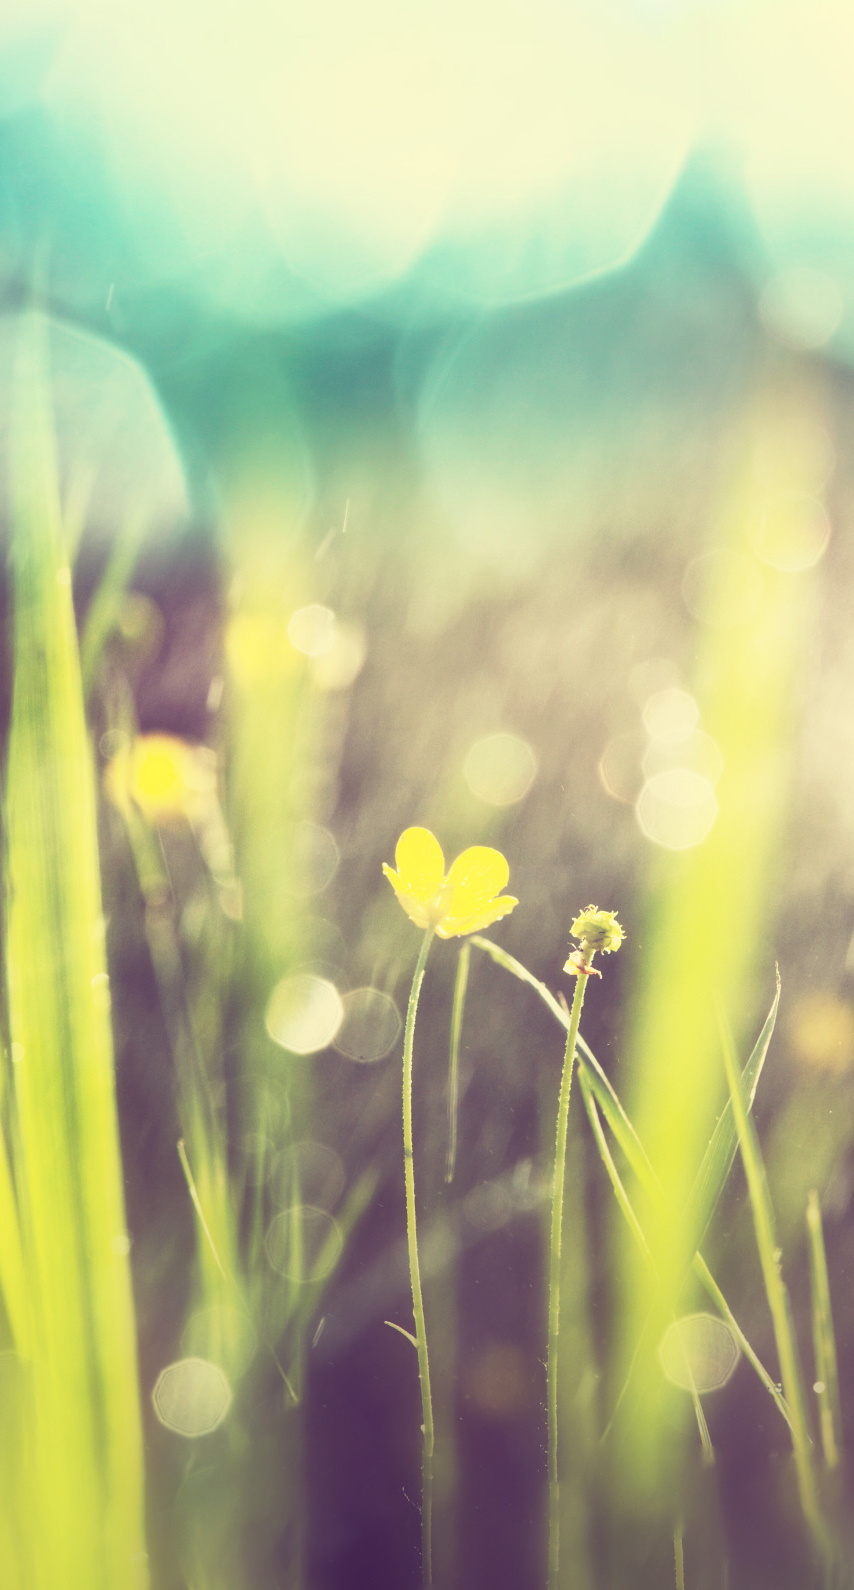 abstract, field, bright, summer, graphic, sun, blur